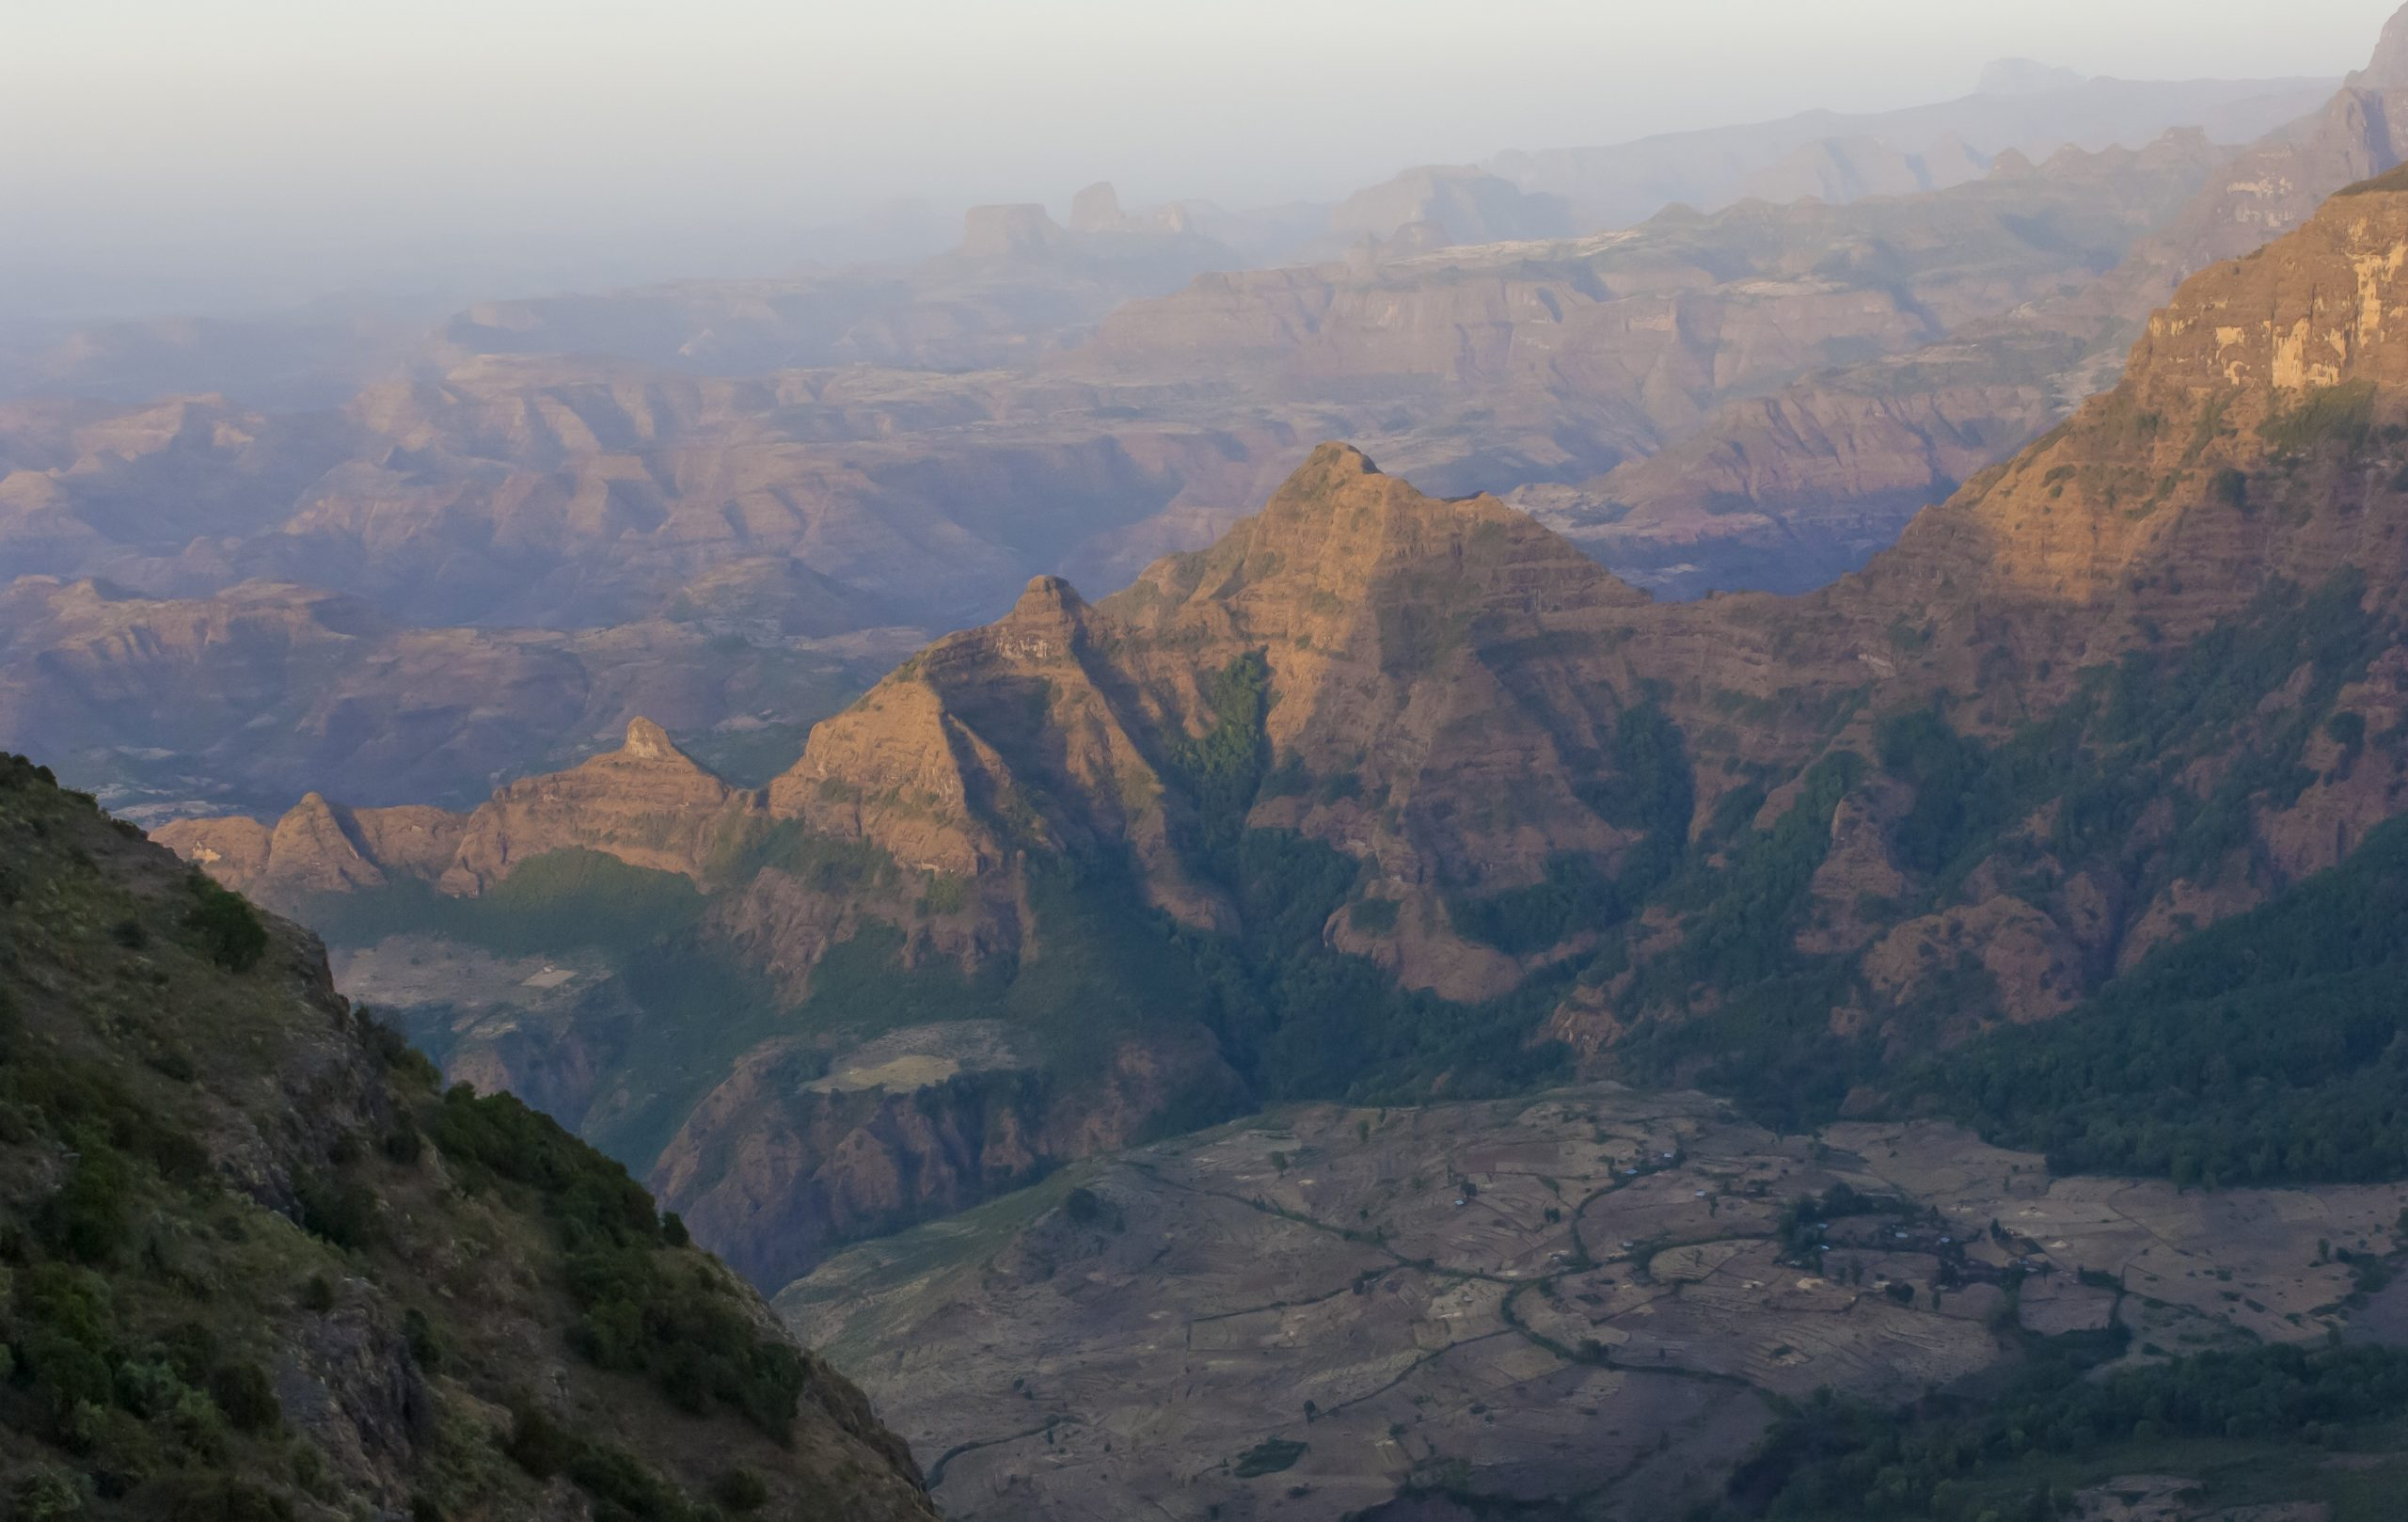 view from high up in the simien mountains on a cloudy day